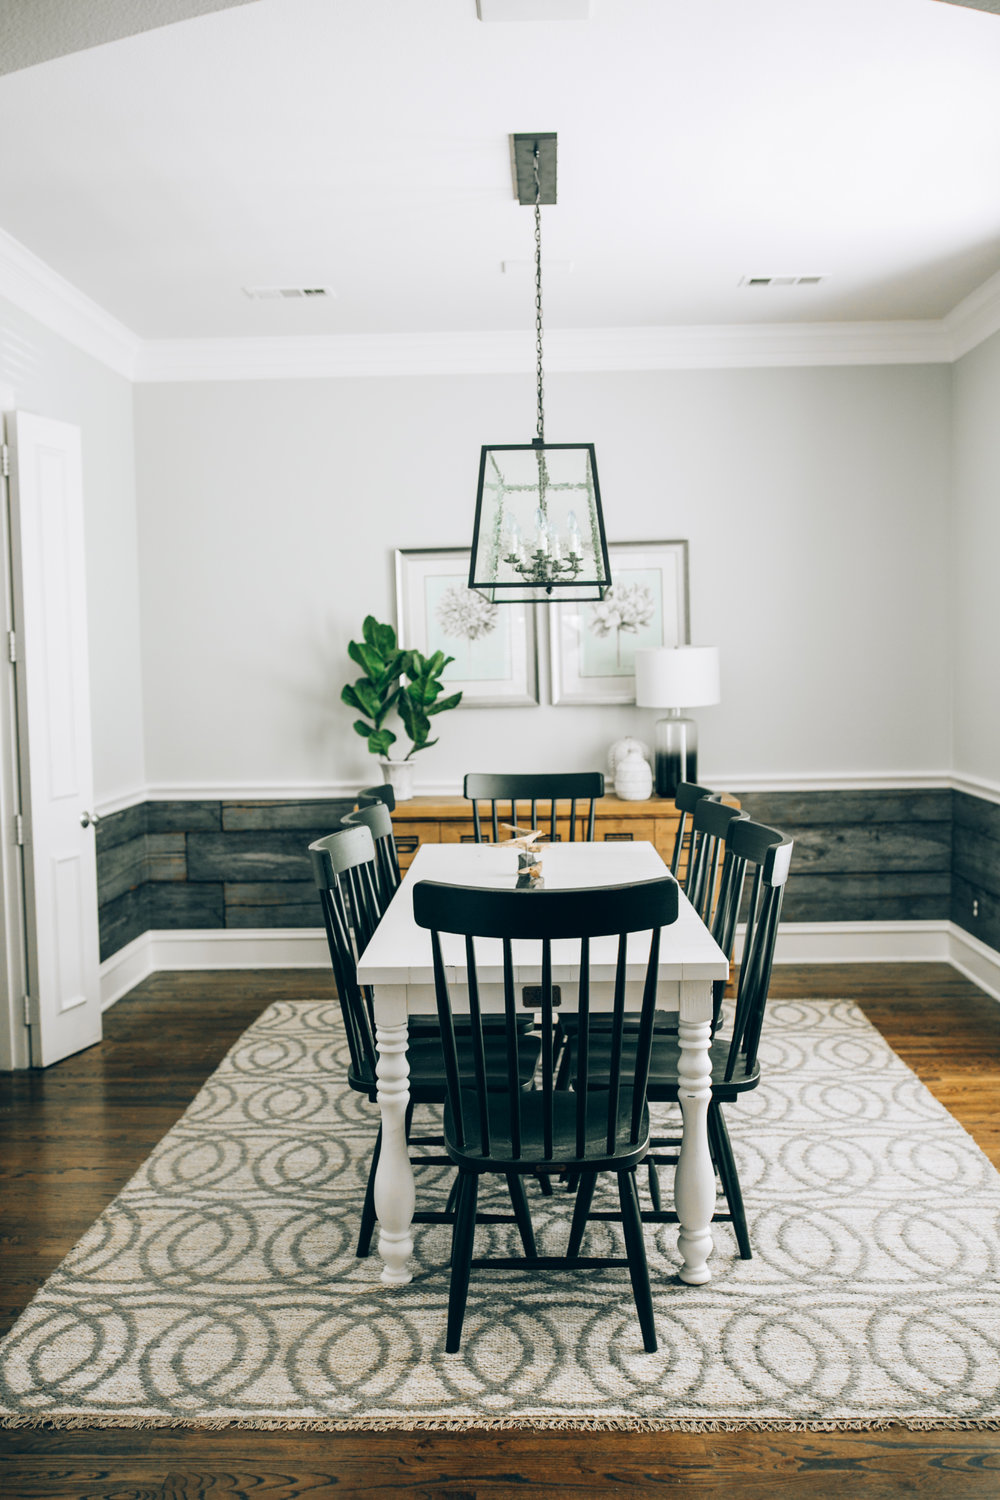 Dining Room Remodel Decorating125.jpg